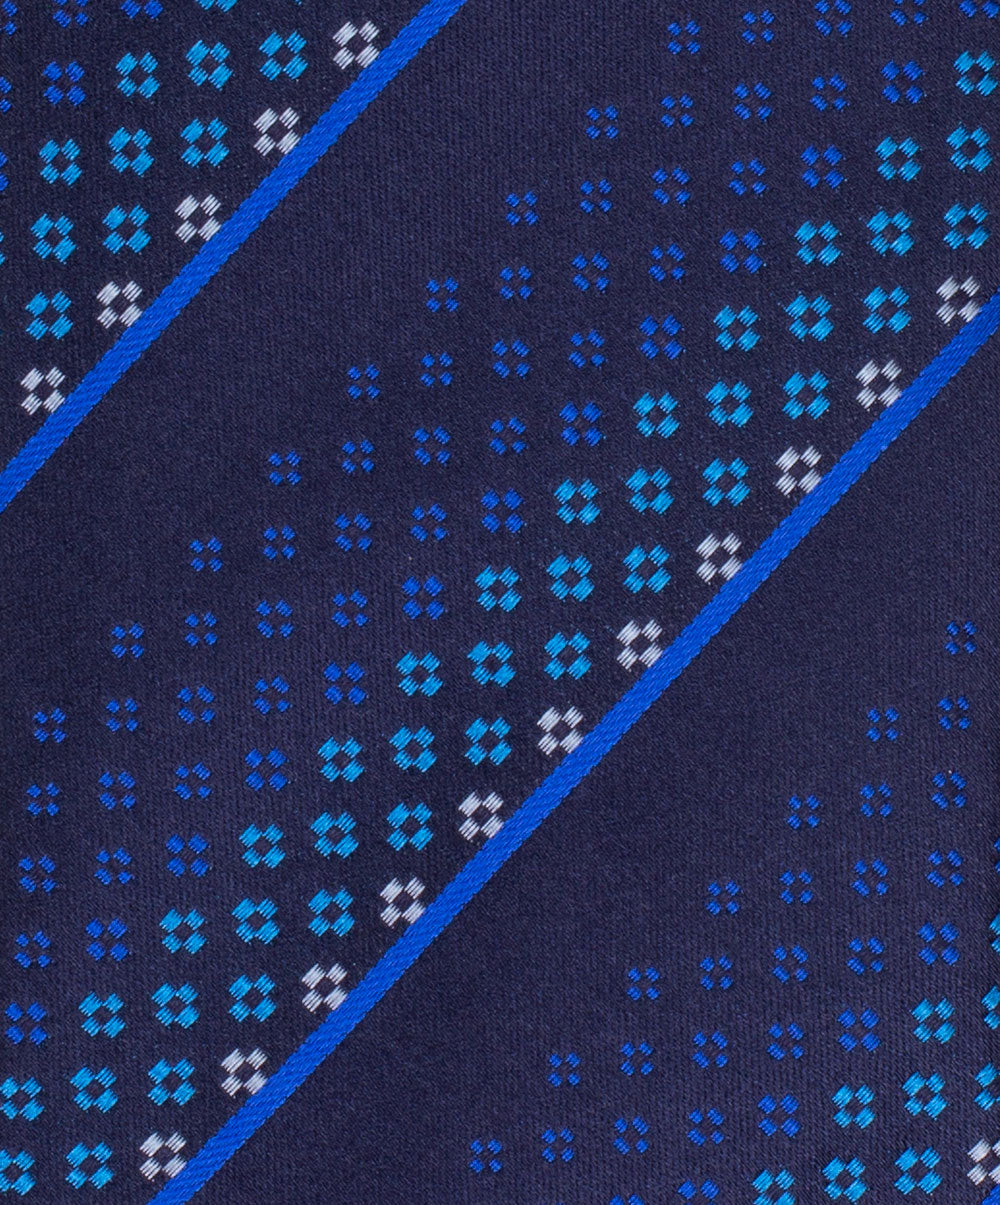 8.0cm Navy/Royal Blue/Cobalt Blue/White Diamond & Stripe Tie